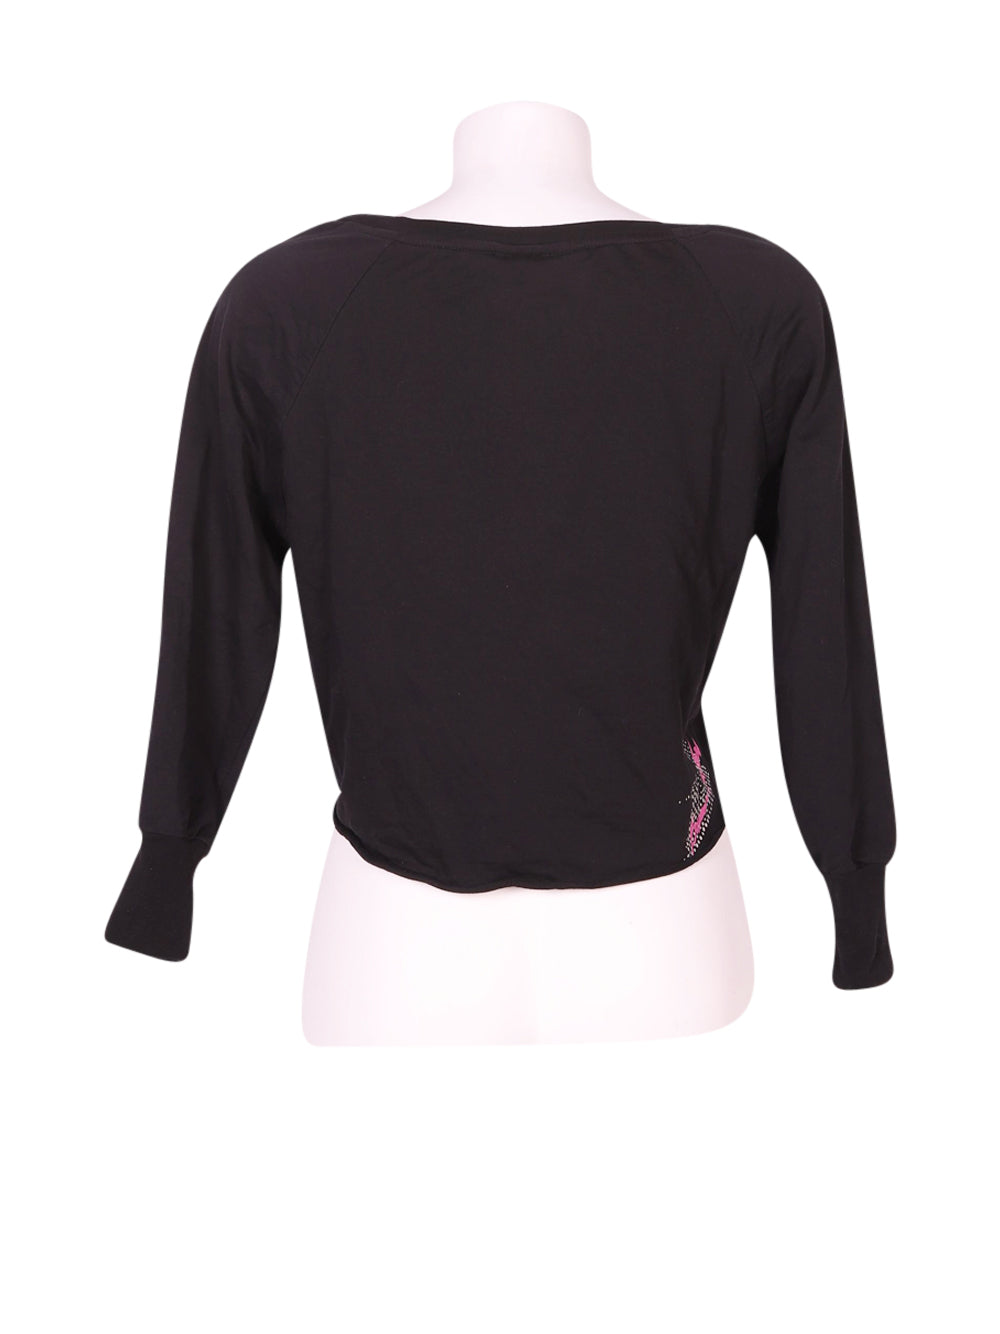 Back photo of Preloved Boxeur Des Rues Black Woman's long sleeved shirt - size 10/M